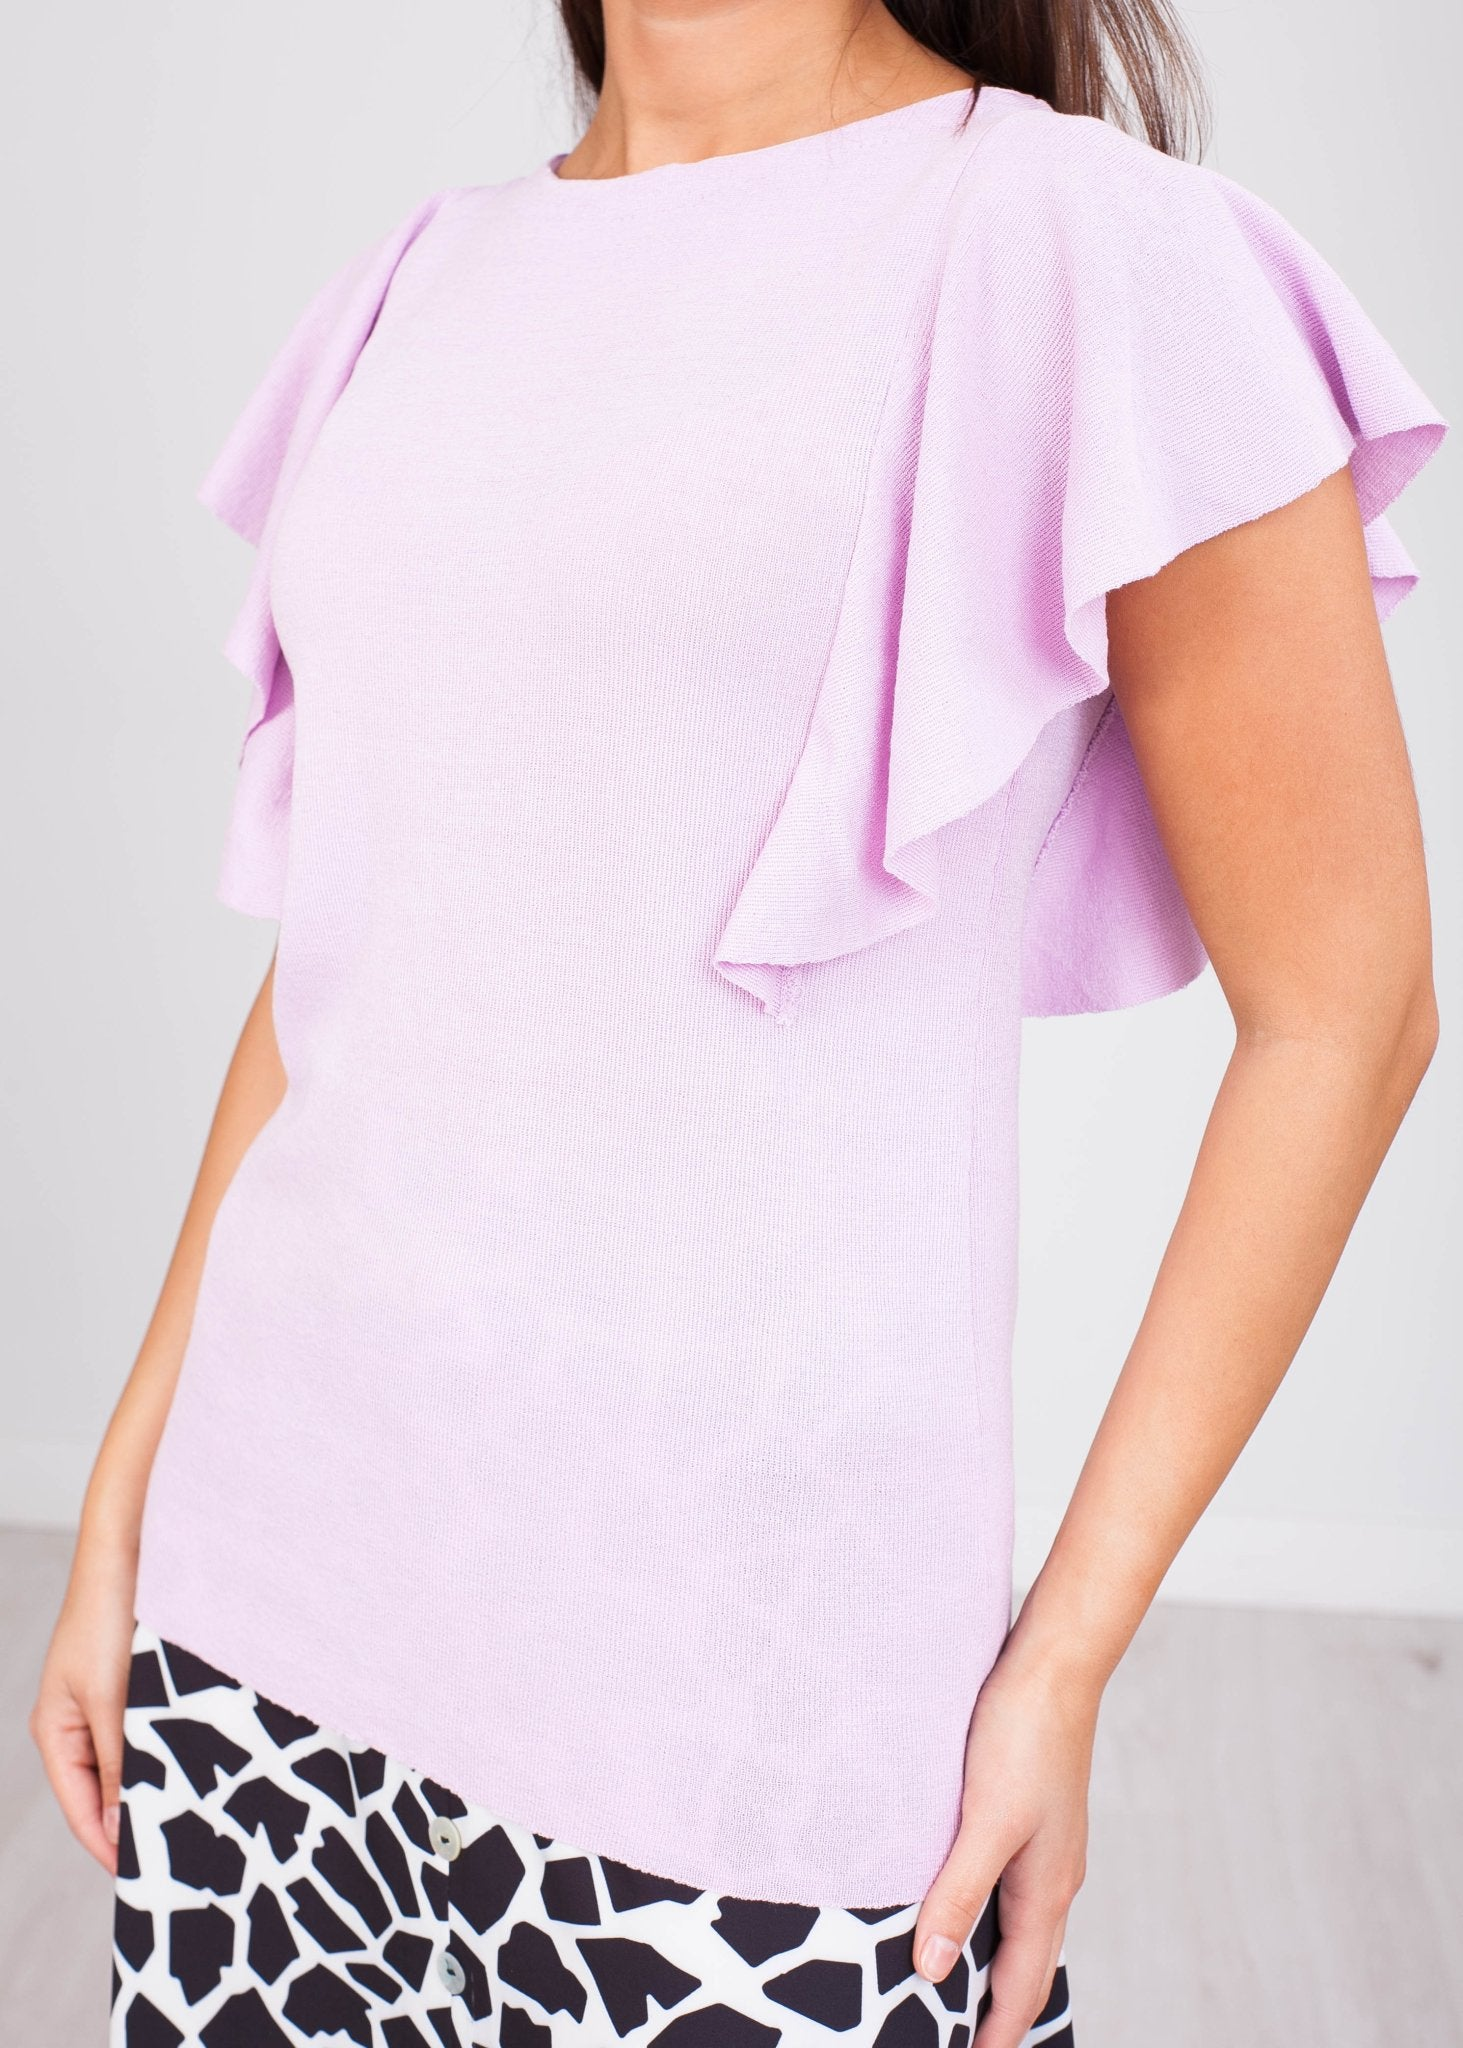 Priya Lilac Frill Jumper - The Walk in Wardrobe